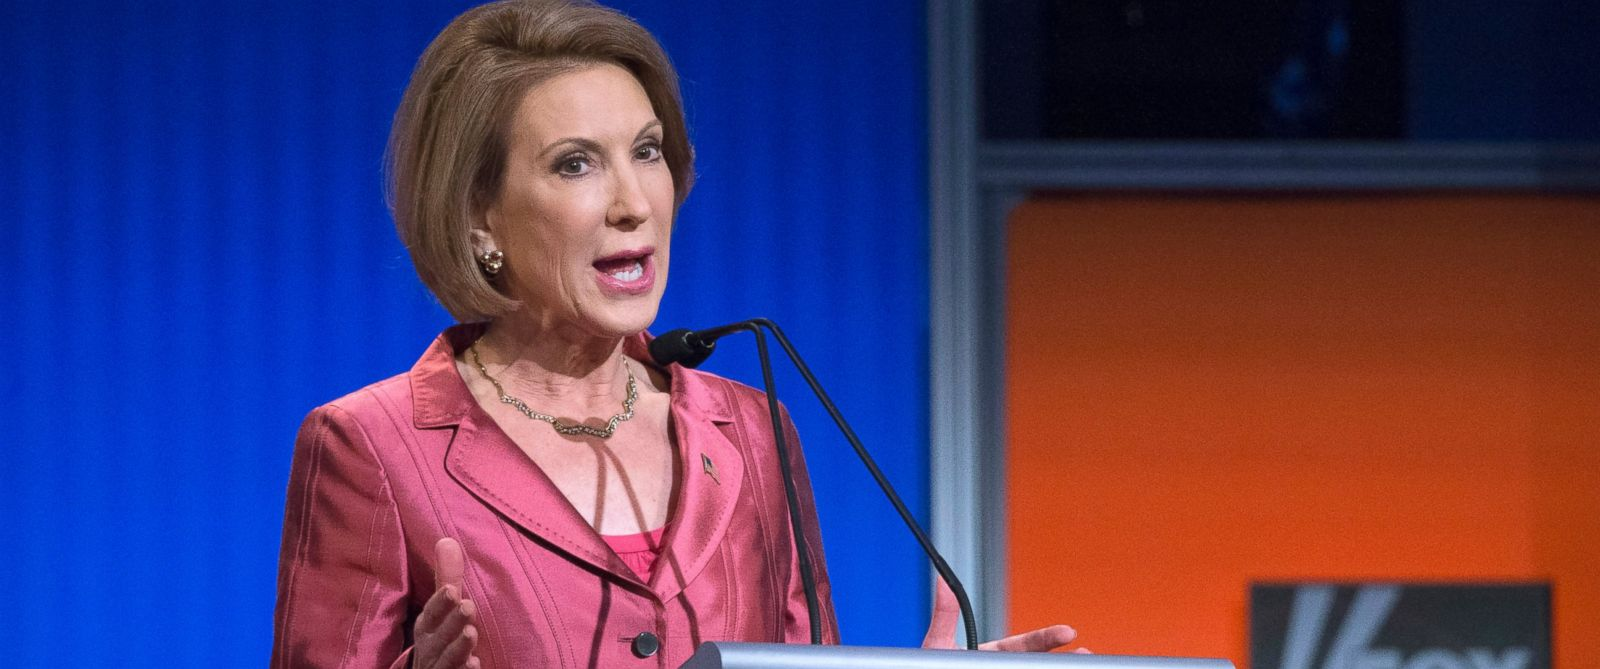 PHOTO: Republican presidential candidate Carly Fiorina speaks during a FOX News Channel pre-debate forum at the Quicken Loans Arena, Aug. 6, 2015, in Cleveland.